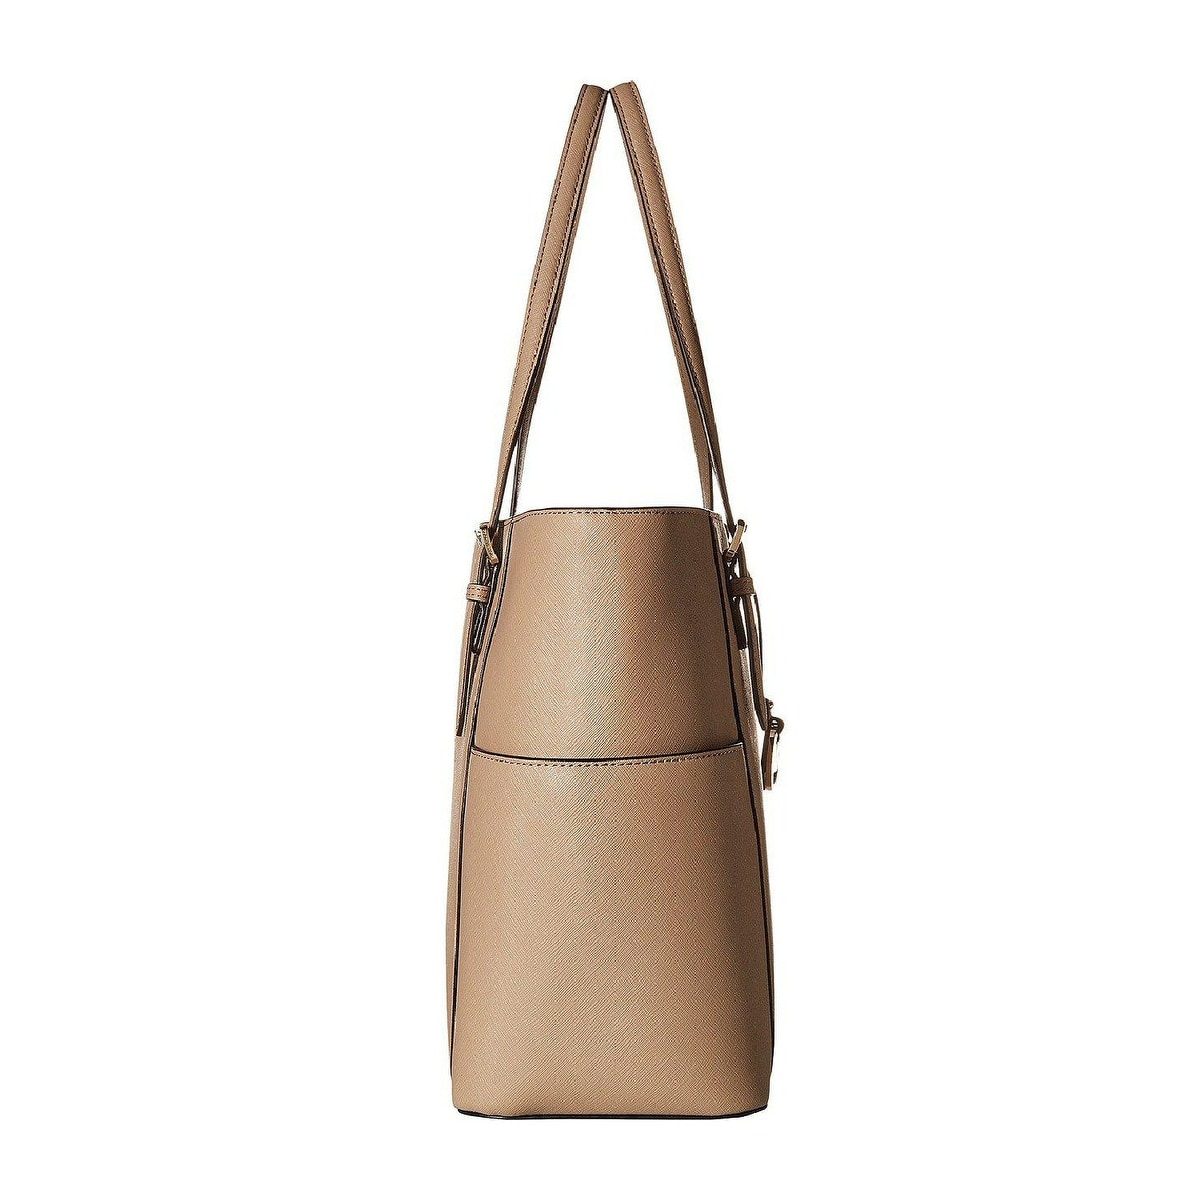 22d9b5588c04 Shop MICHAEL Michael Kors Jet Set Travel Large Leather Tote Truffle/Gold -  One Size - Free Shipping Today - Overstock - 25744618